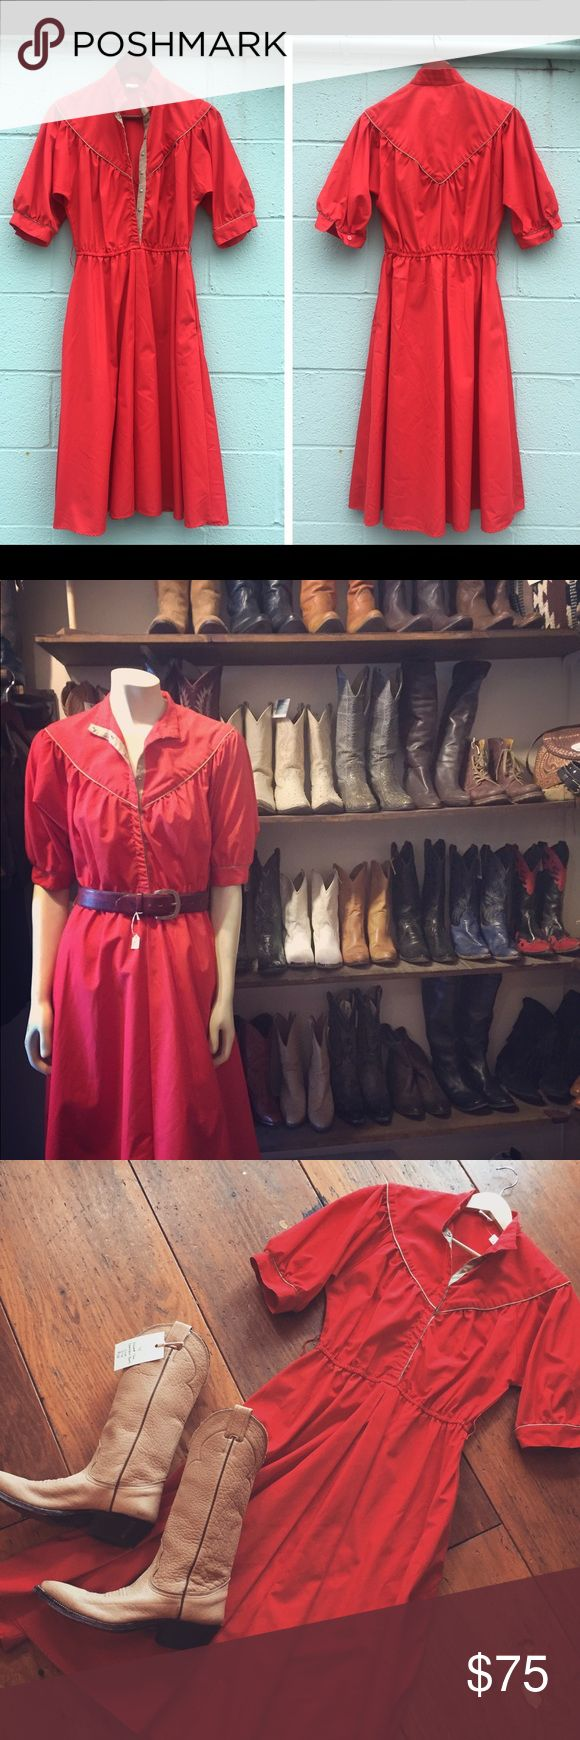 1950s Vintage Western Red Dress In perfect condition, Vintage adorable dress. Candy apple red in color. Woven pattern in the back. Button up. Doesn't have a size tag but looks In-between a Medium and a Small. Perfect for those Rockabilly ladies out there! 1955 Vintage Dresses